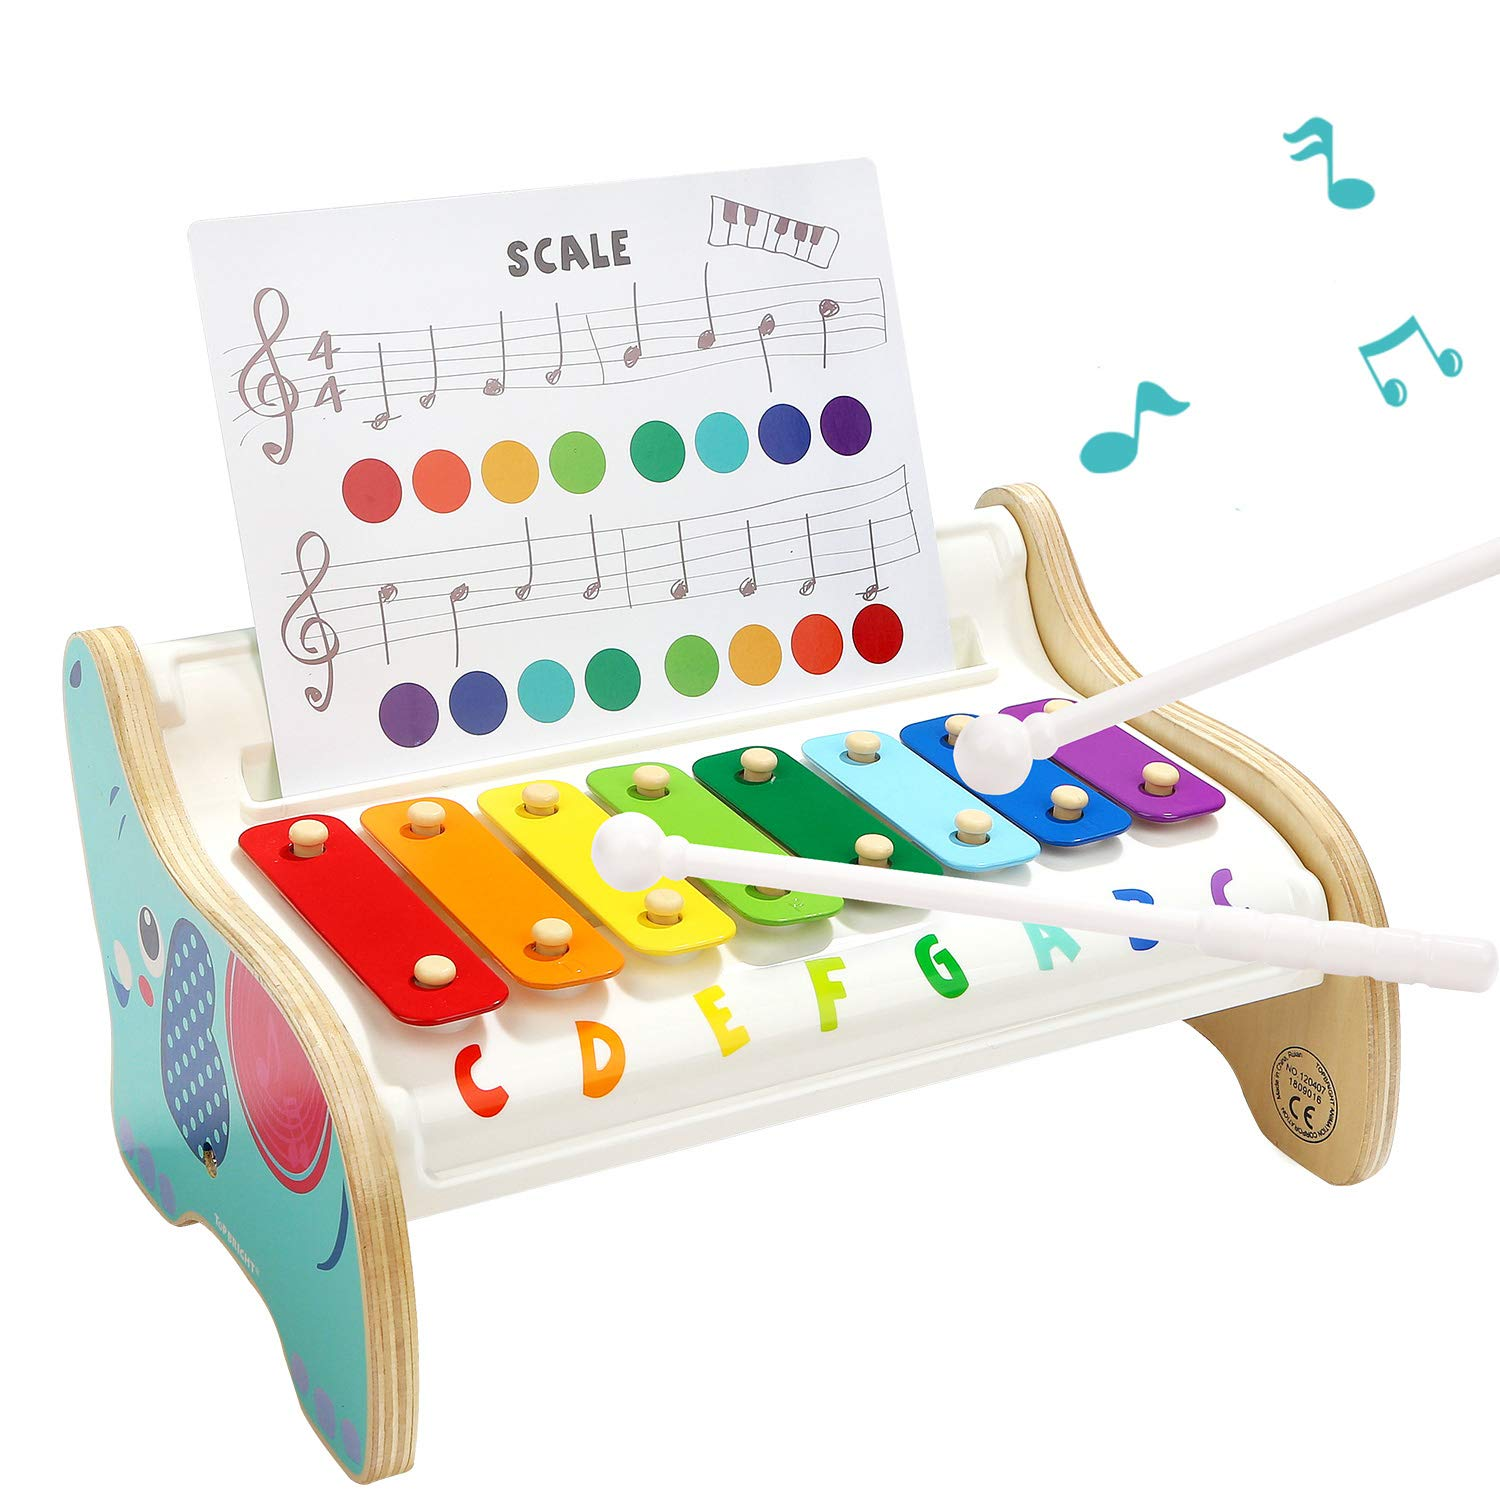 TOP BRIGHT Childs Xylophone Toy for 18 Month Old, Baby Instruments for 1 Year Old Boy and Girl Birthday Present